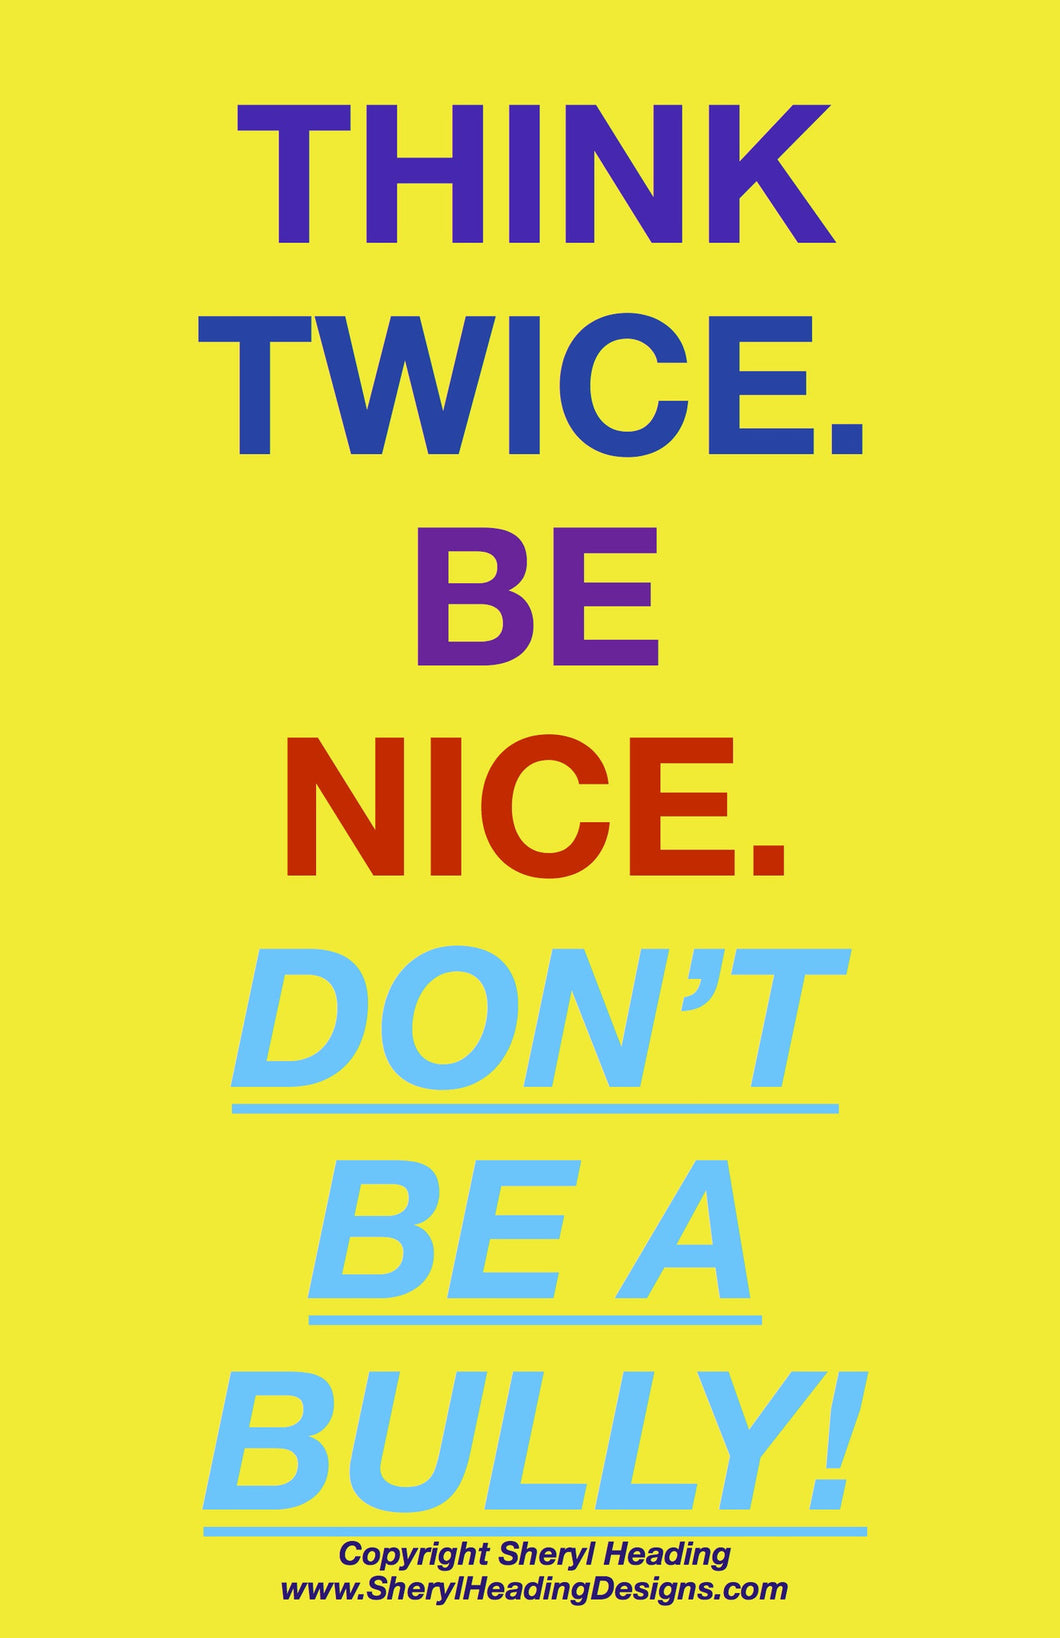 Think Twice Be Nice Don't Be A Bully Poster - Sheryl Heading Designs